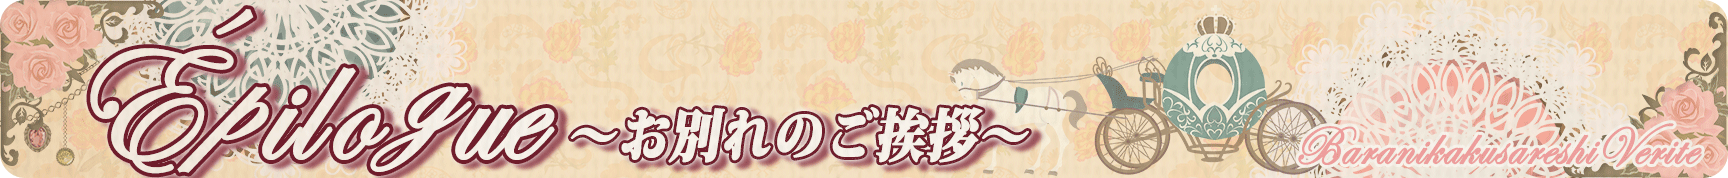 banner04.png